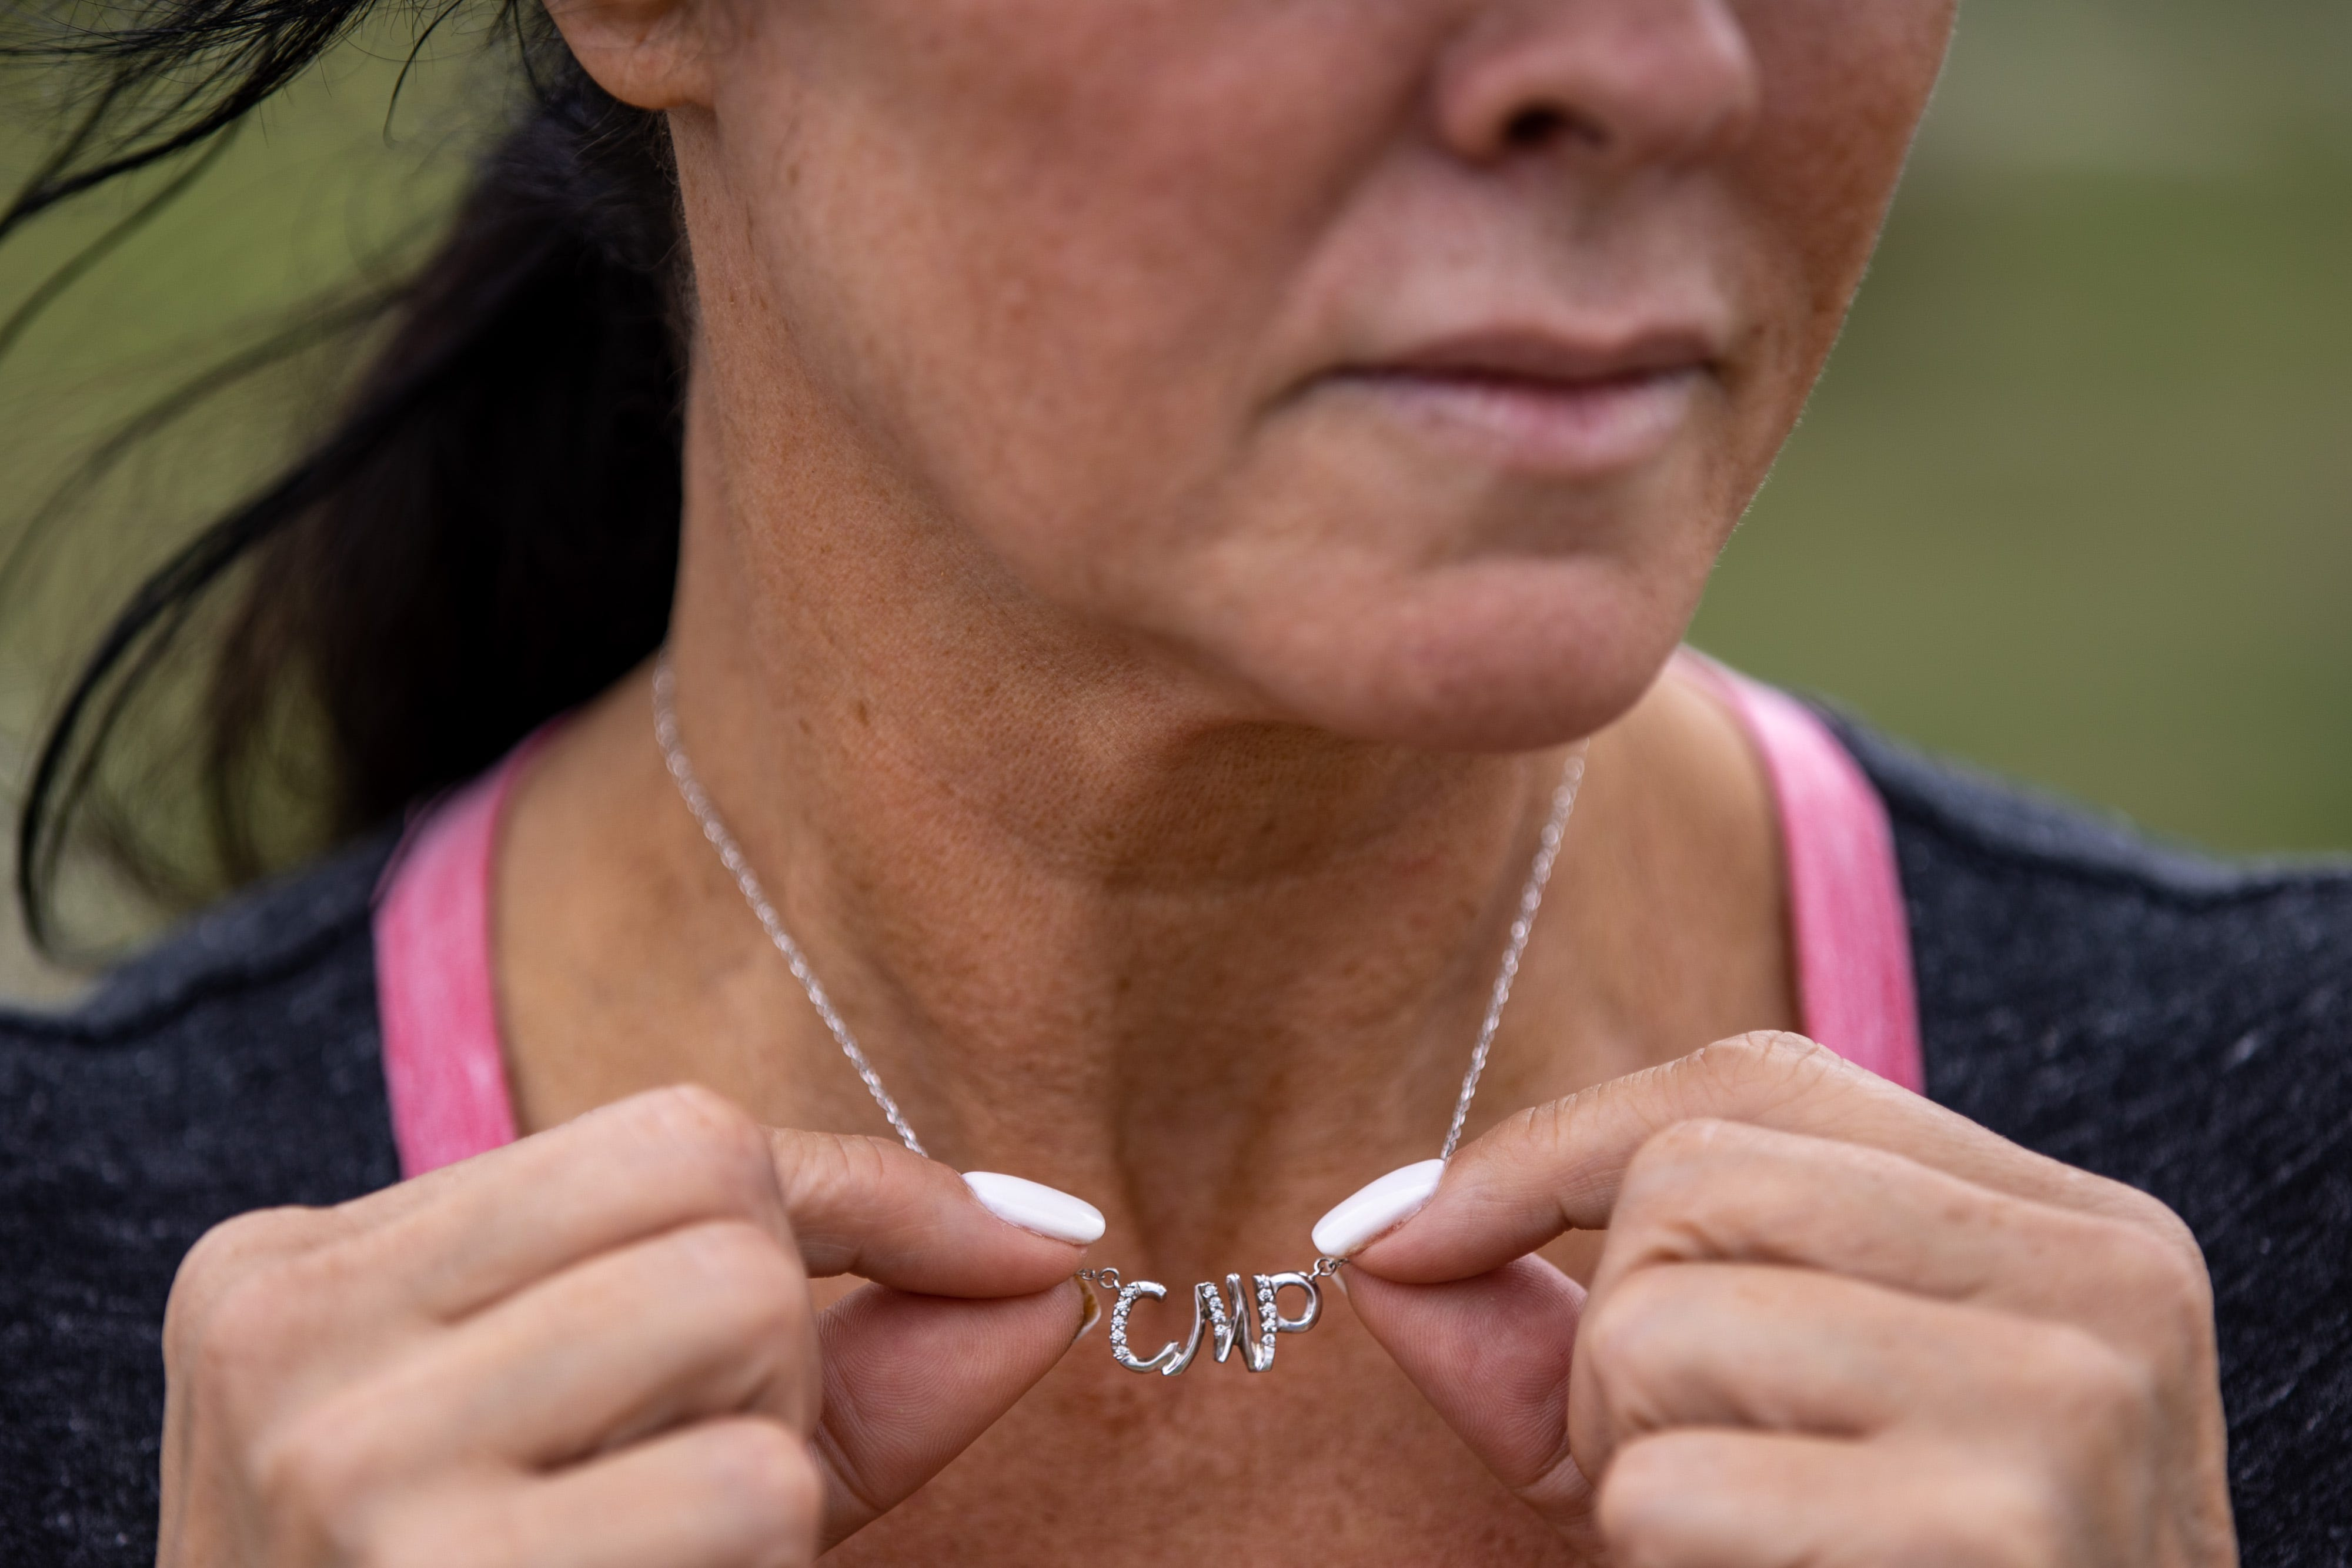 Rhonda Packineau wears a necklace with her daughter, Cheyenne Packineau's, initials as she visits her grave in the Parshall, North Dakota Meadows Cemetery. Cheyenne, a standout basketball player at Parshall High School who holds the all-time scoring record, began taking pain pills in high school to cope with a sports injury. Her abuse continued into college, where she got a full-ride scholarship for basketball. In 2018, she was found dead from an overdose of Fentanyl in a Bismarck hotel room at just 21 years old. Today, Cheyenne's family raises Cheyenne's son, Kasten, as they aim to raise awareness about addiction in their daughter's memory. June 26, 2021